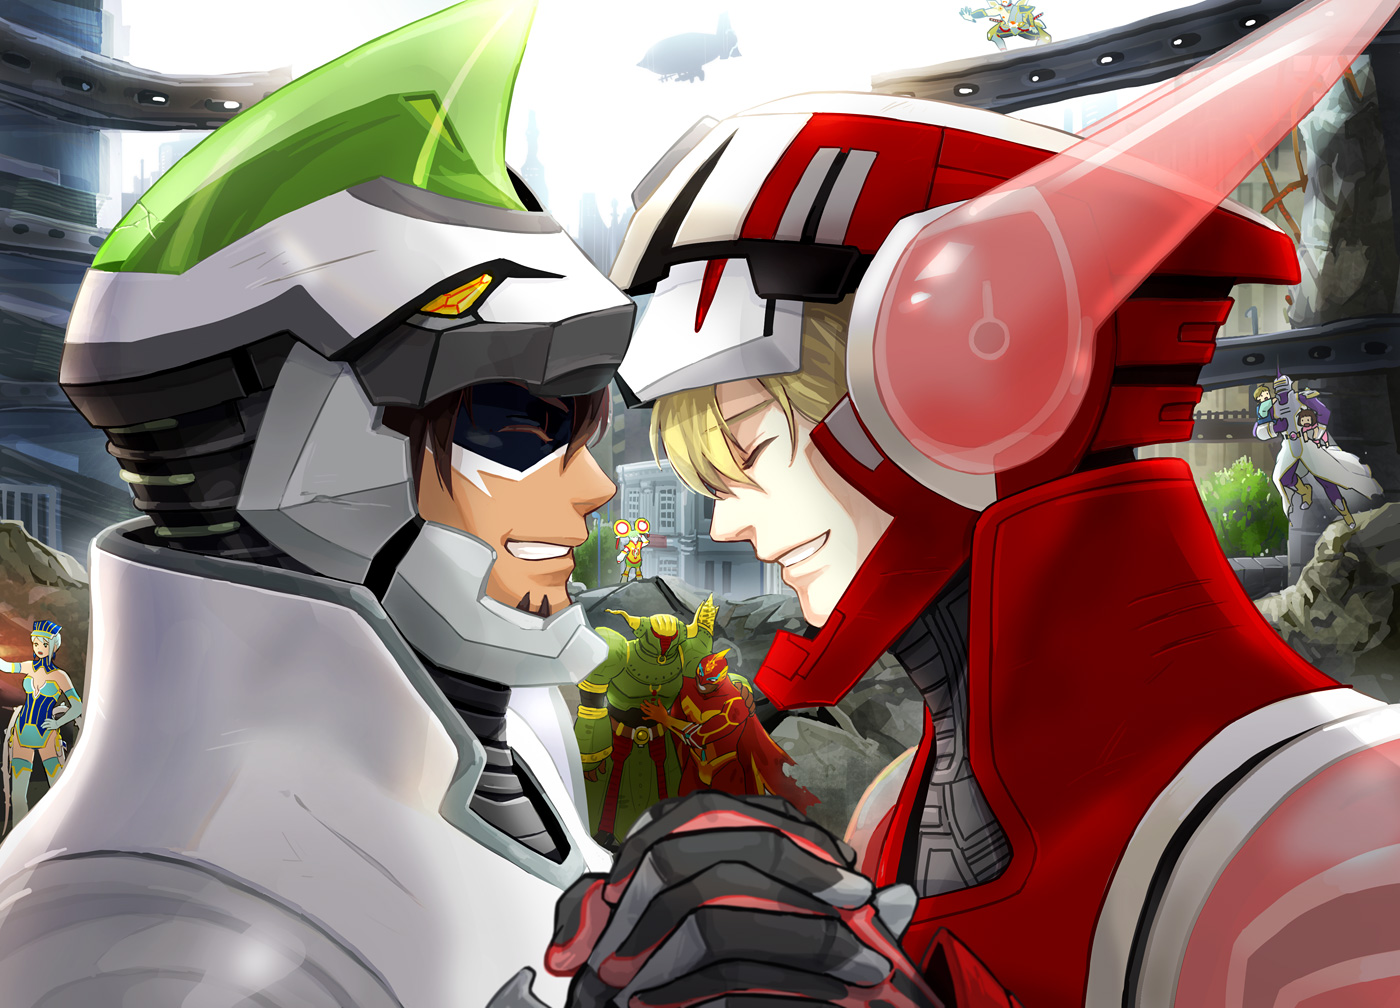 Fire Emblem Tiger And Bunny: TIGER & BUNNY Image #716784